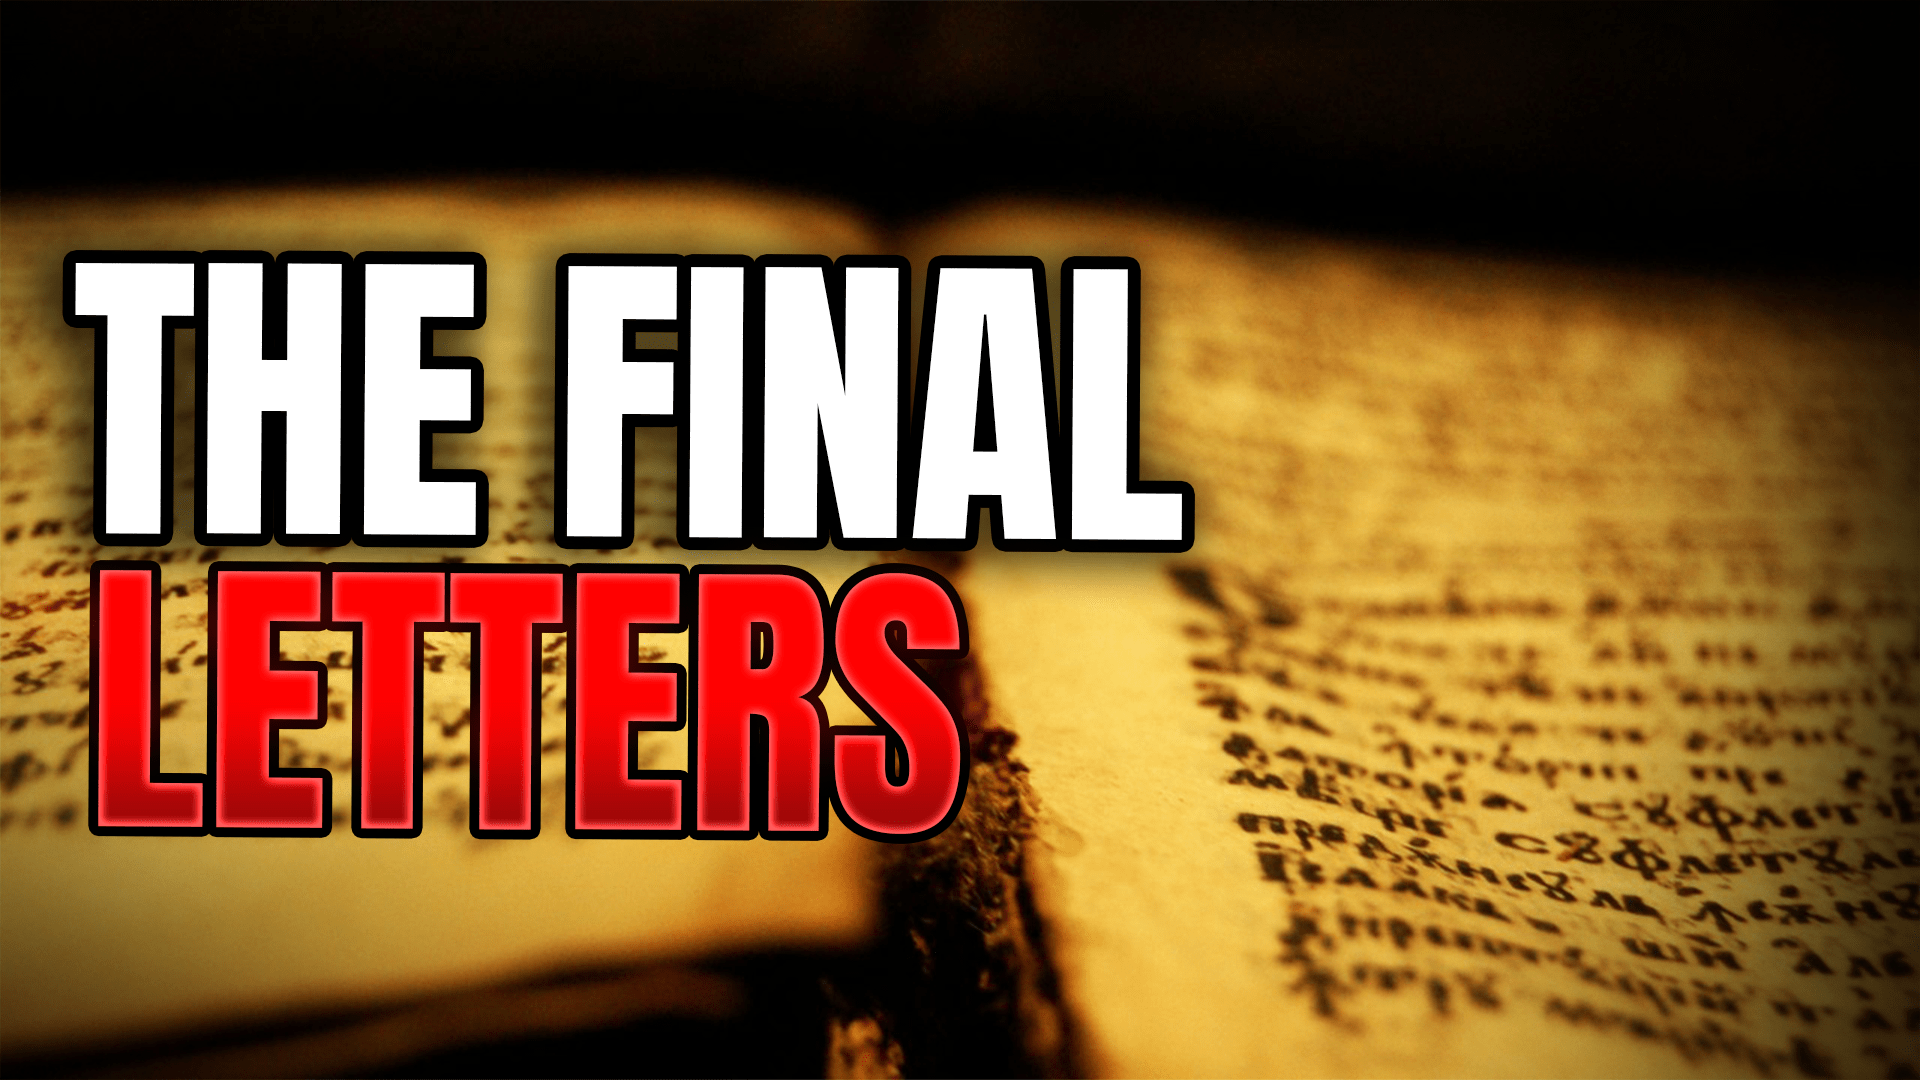 The Final Letters